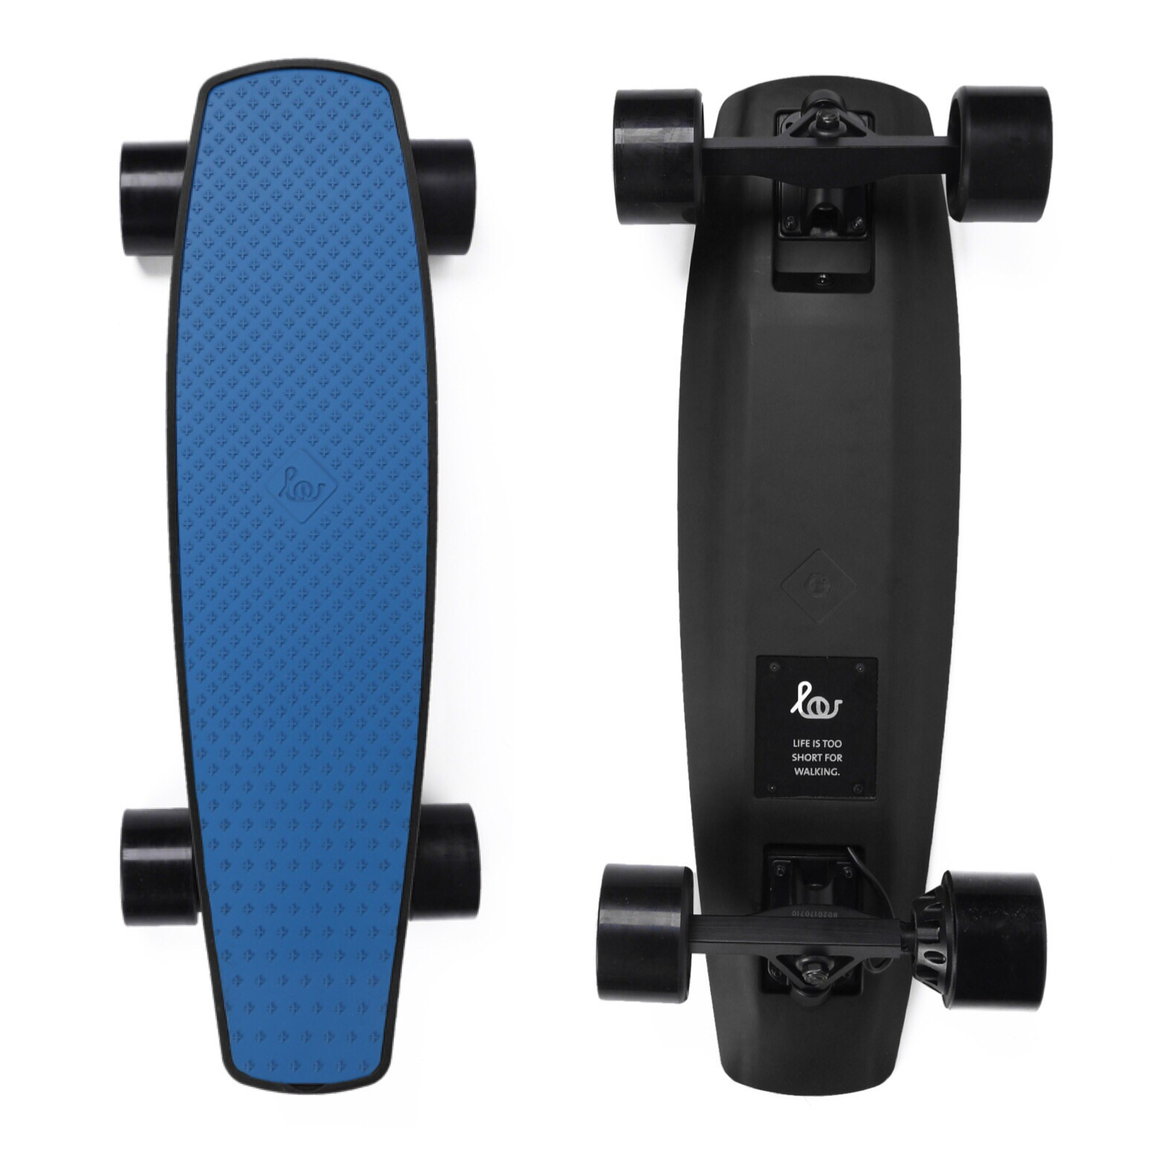 "SoFlow LOU Board 1.0 Electric Skateboard - 1500W Single Hub Motor - 17 MPH 8 Mile Range - 25"" Deck - 79Wh Rechargeable Lithium-ion Battery - Bluetooth Wireless Remote Control - ElectricSkateHQ"